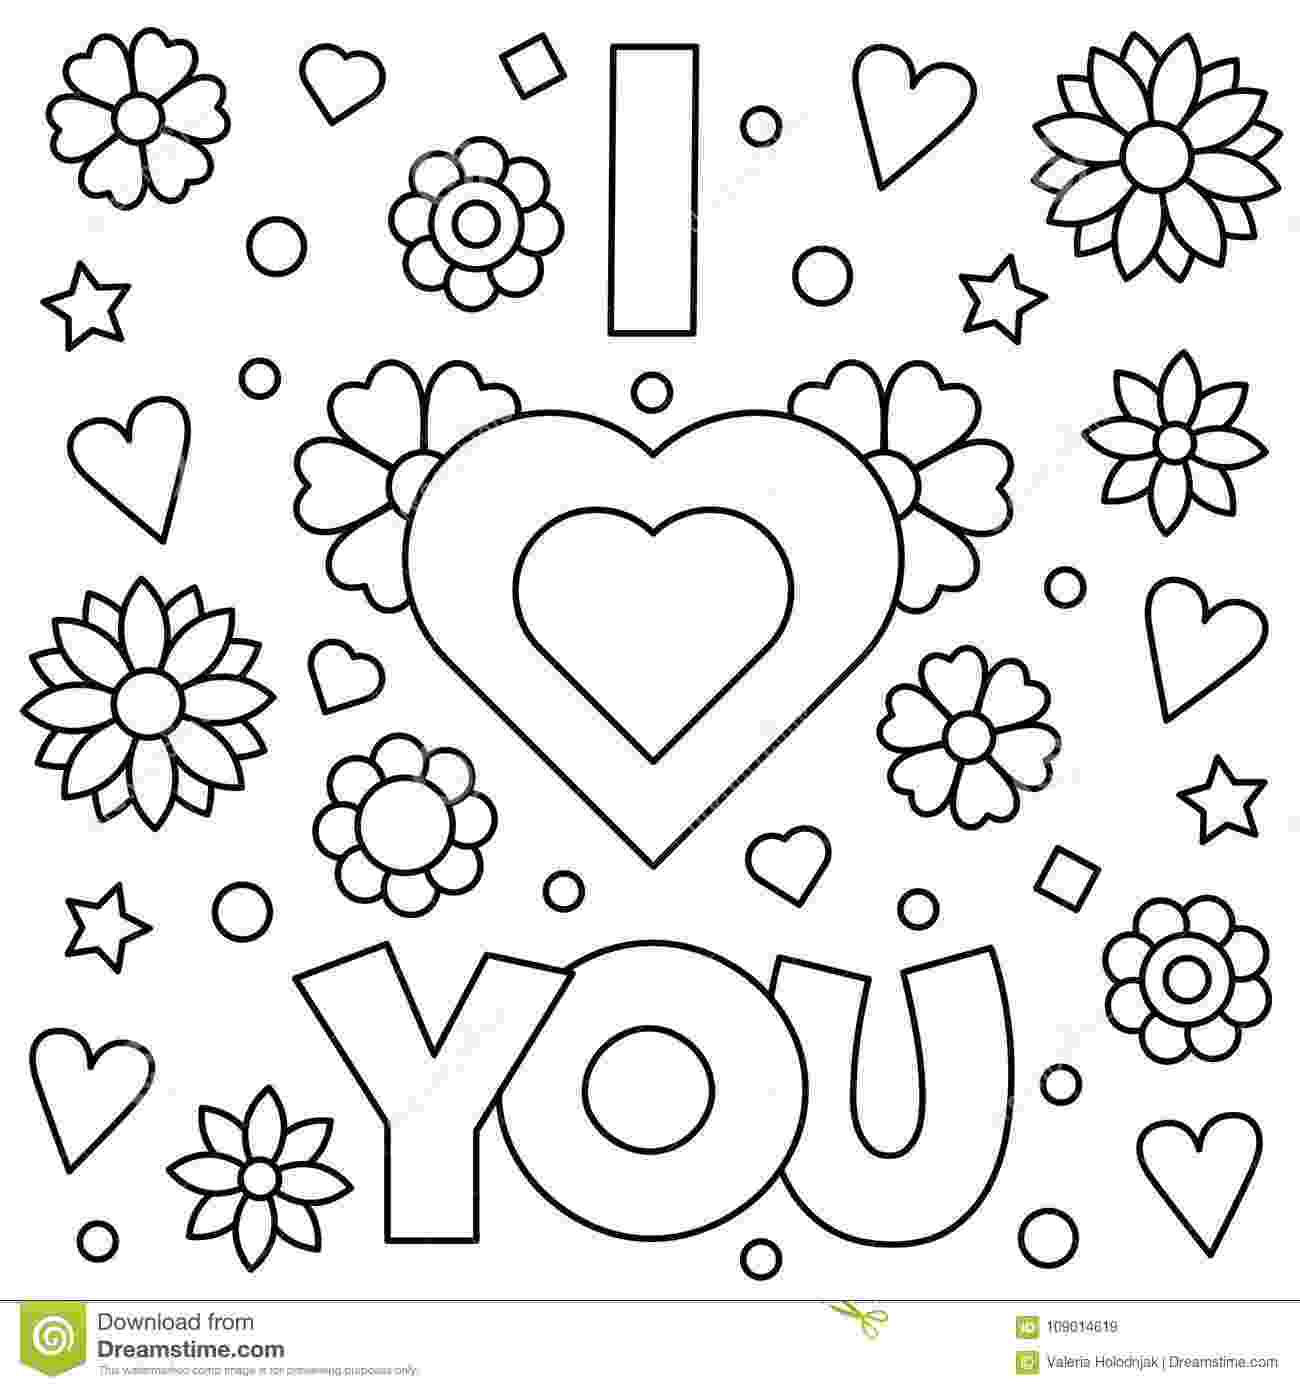 coloring love pictures i love you mom coloring pages to download and print for free love pictures coloring